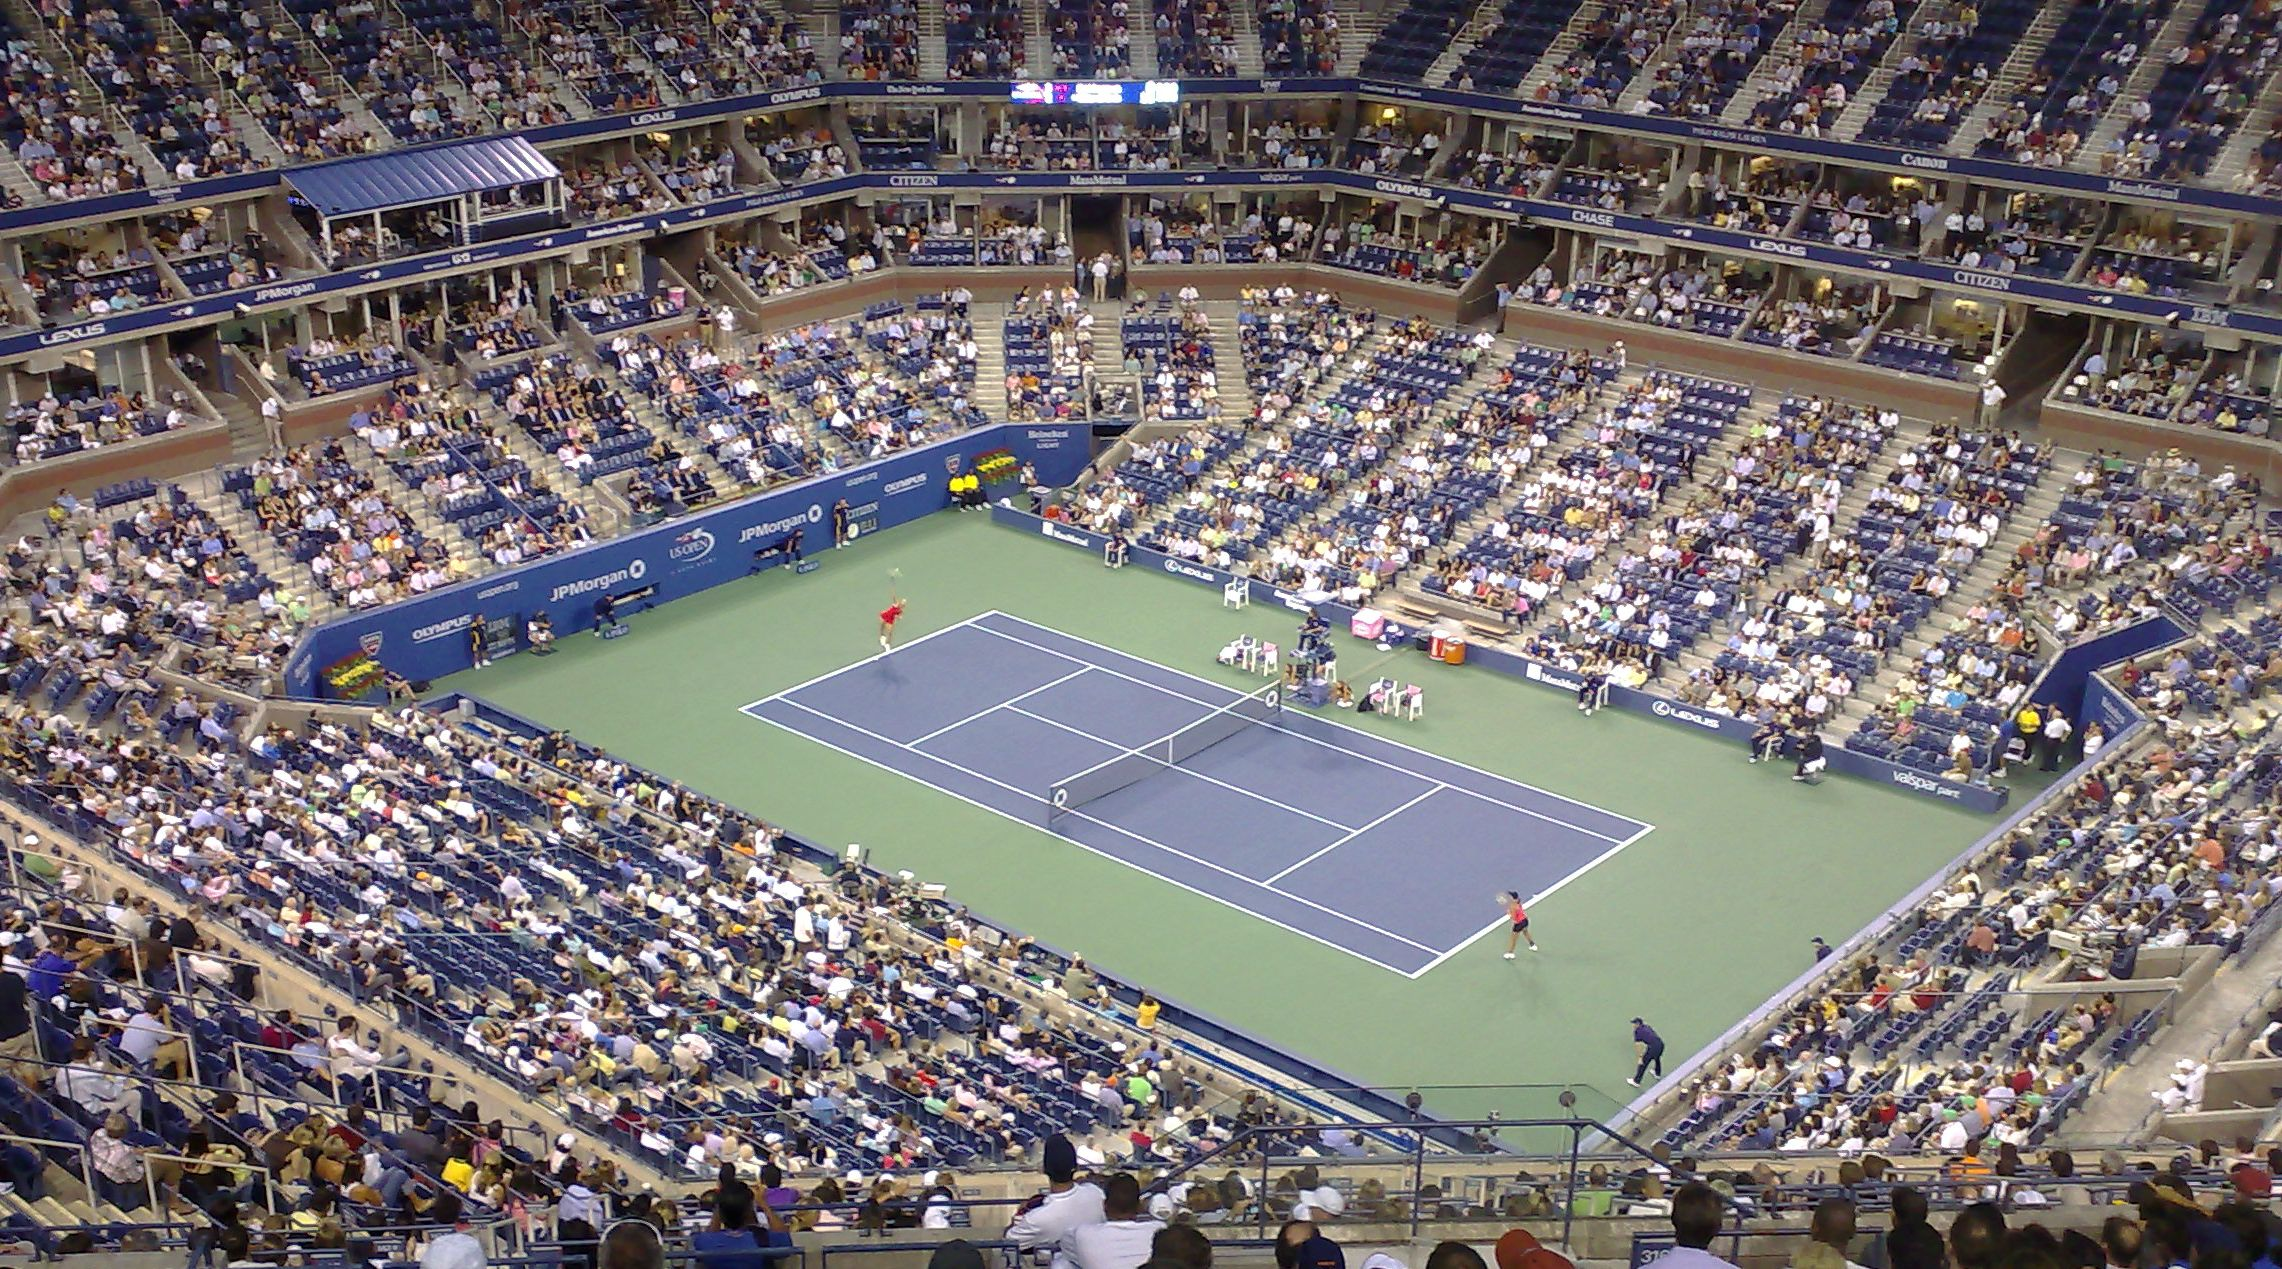 Upcoming tennis tournaments: us open